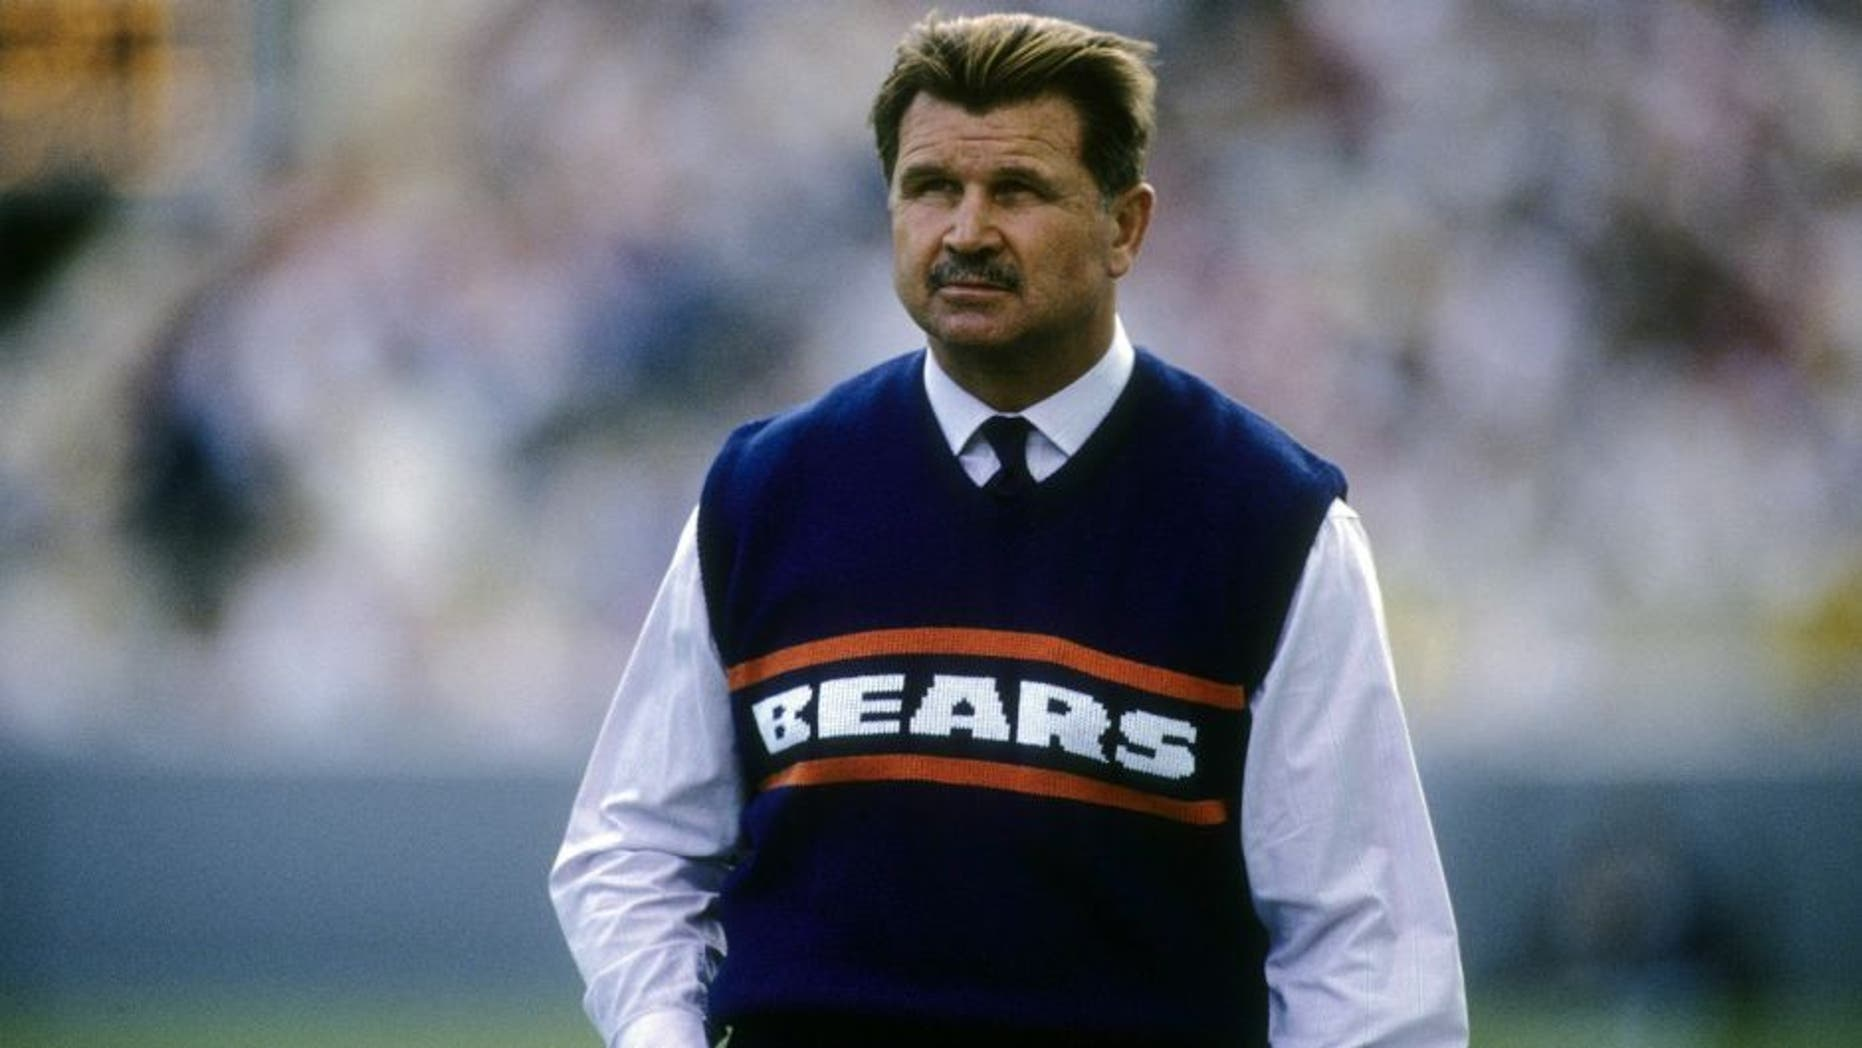 Mike Ditka is best known as a former coach of the NFL's Chicago Bears, the team he led to a Super Bowl title in January1986. (Getty Images)